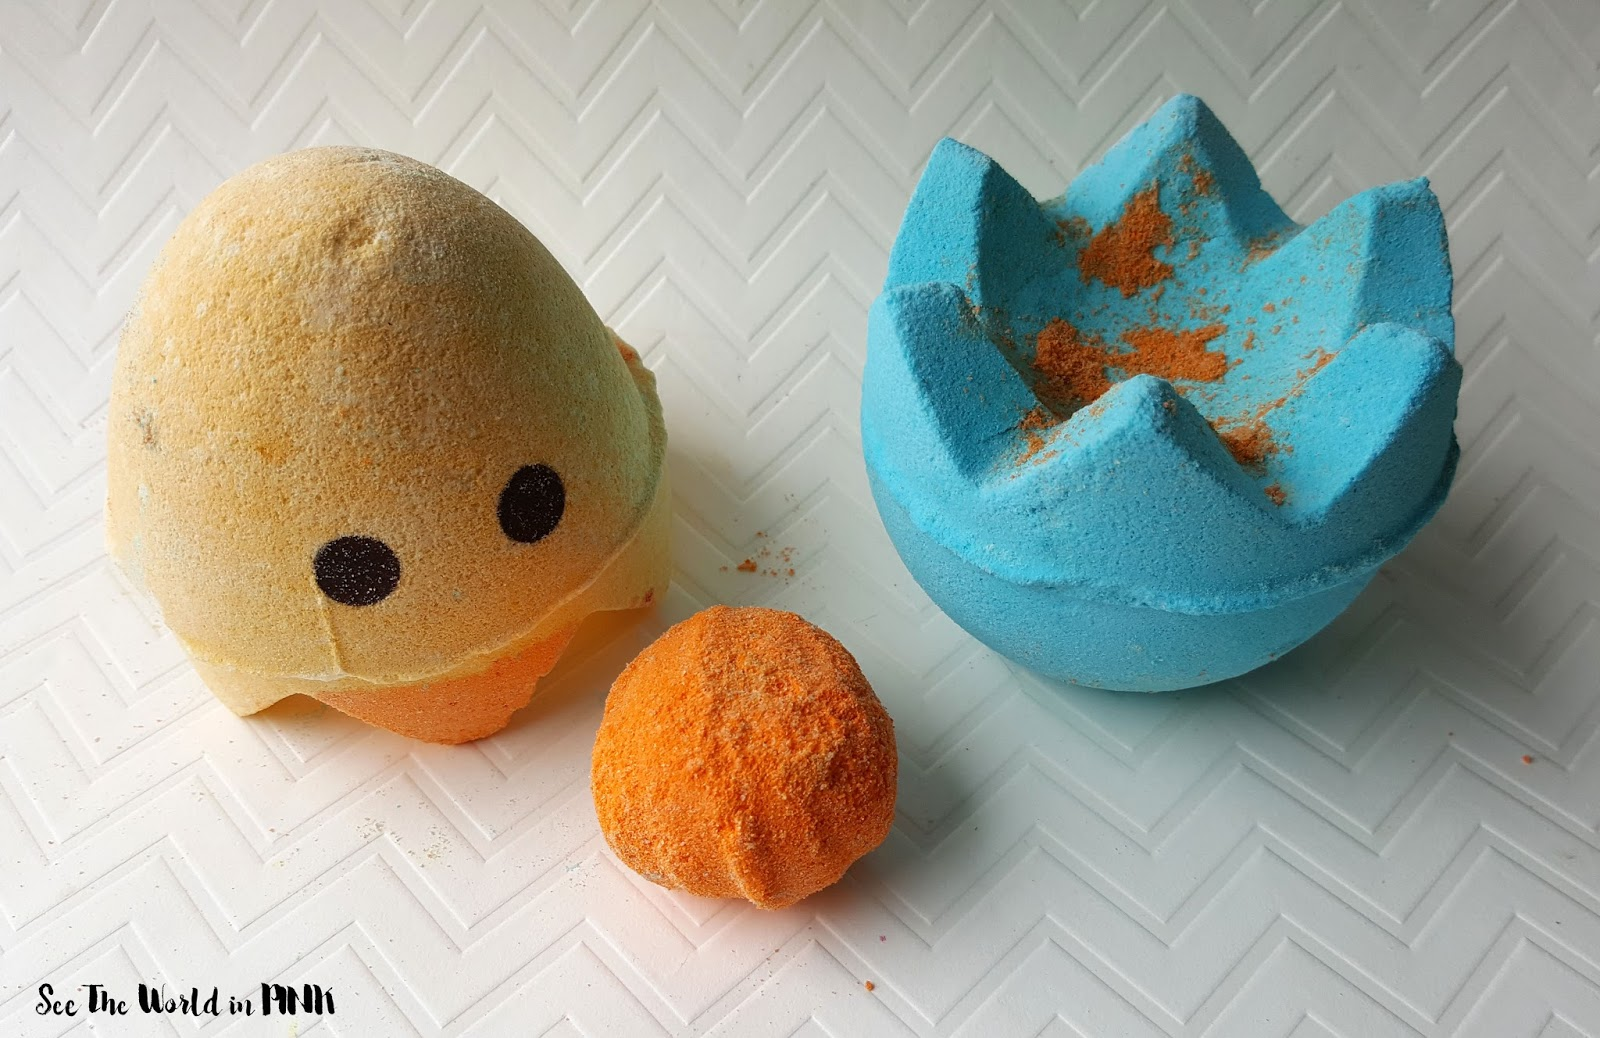 Skincare Sunday - Lush Easter Collection! Chick 'N Mix Bath Bomb